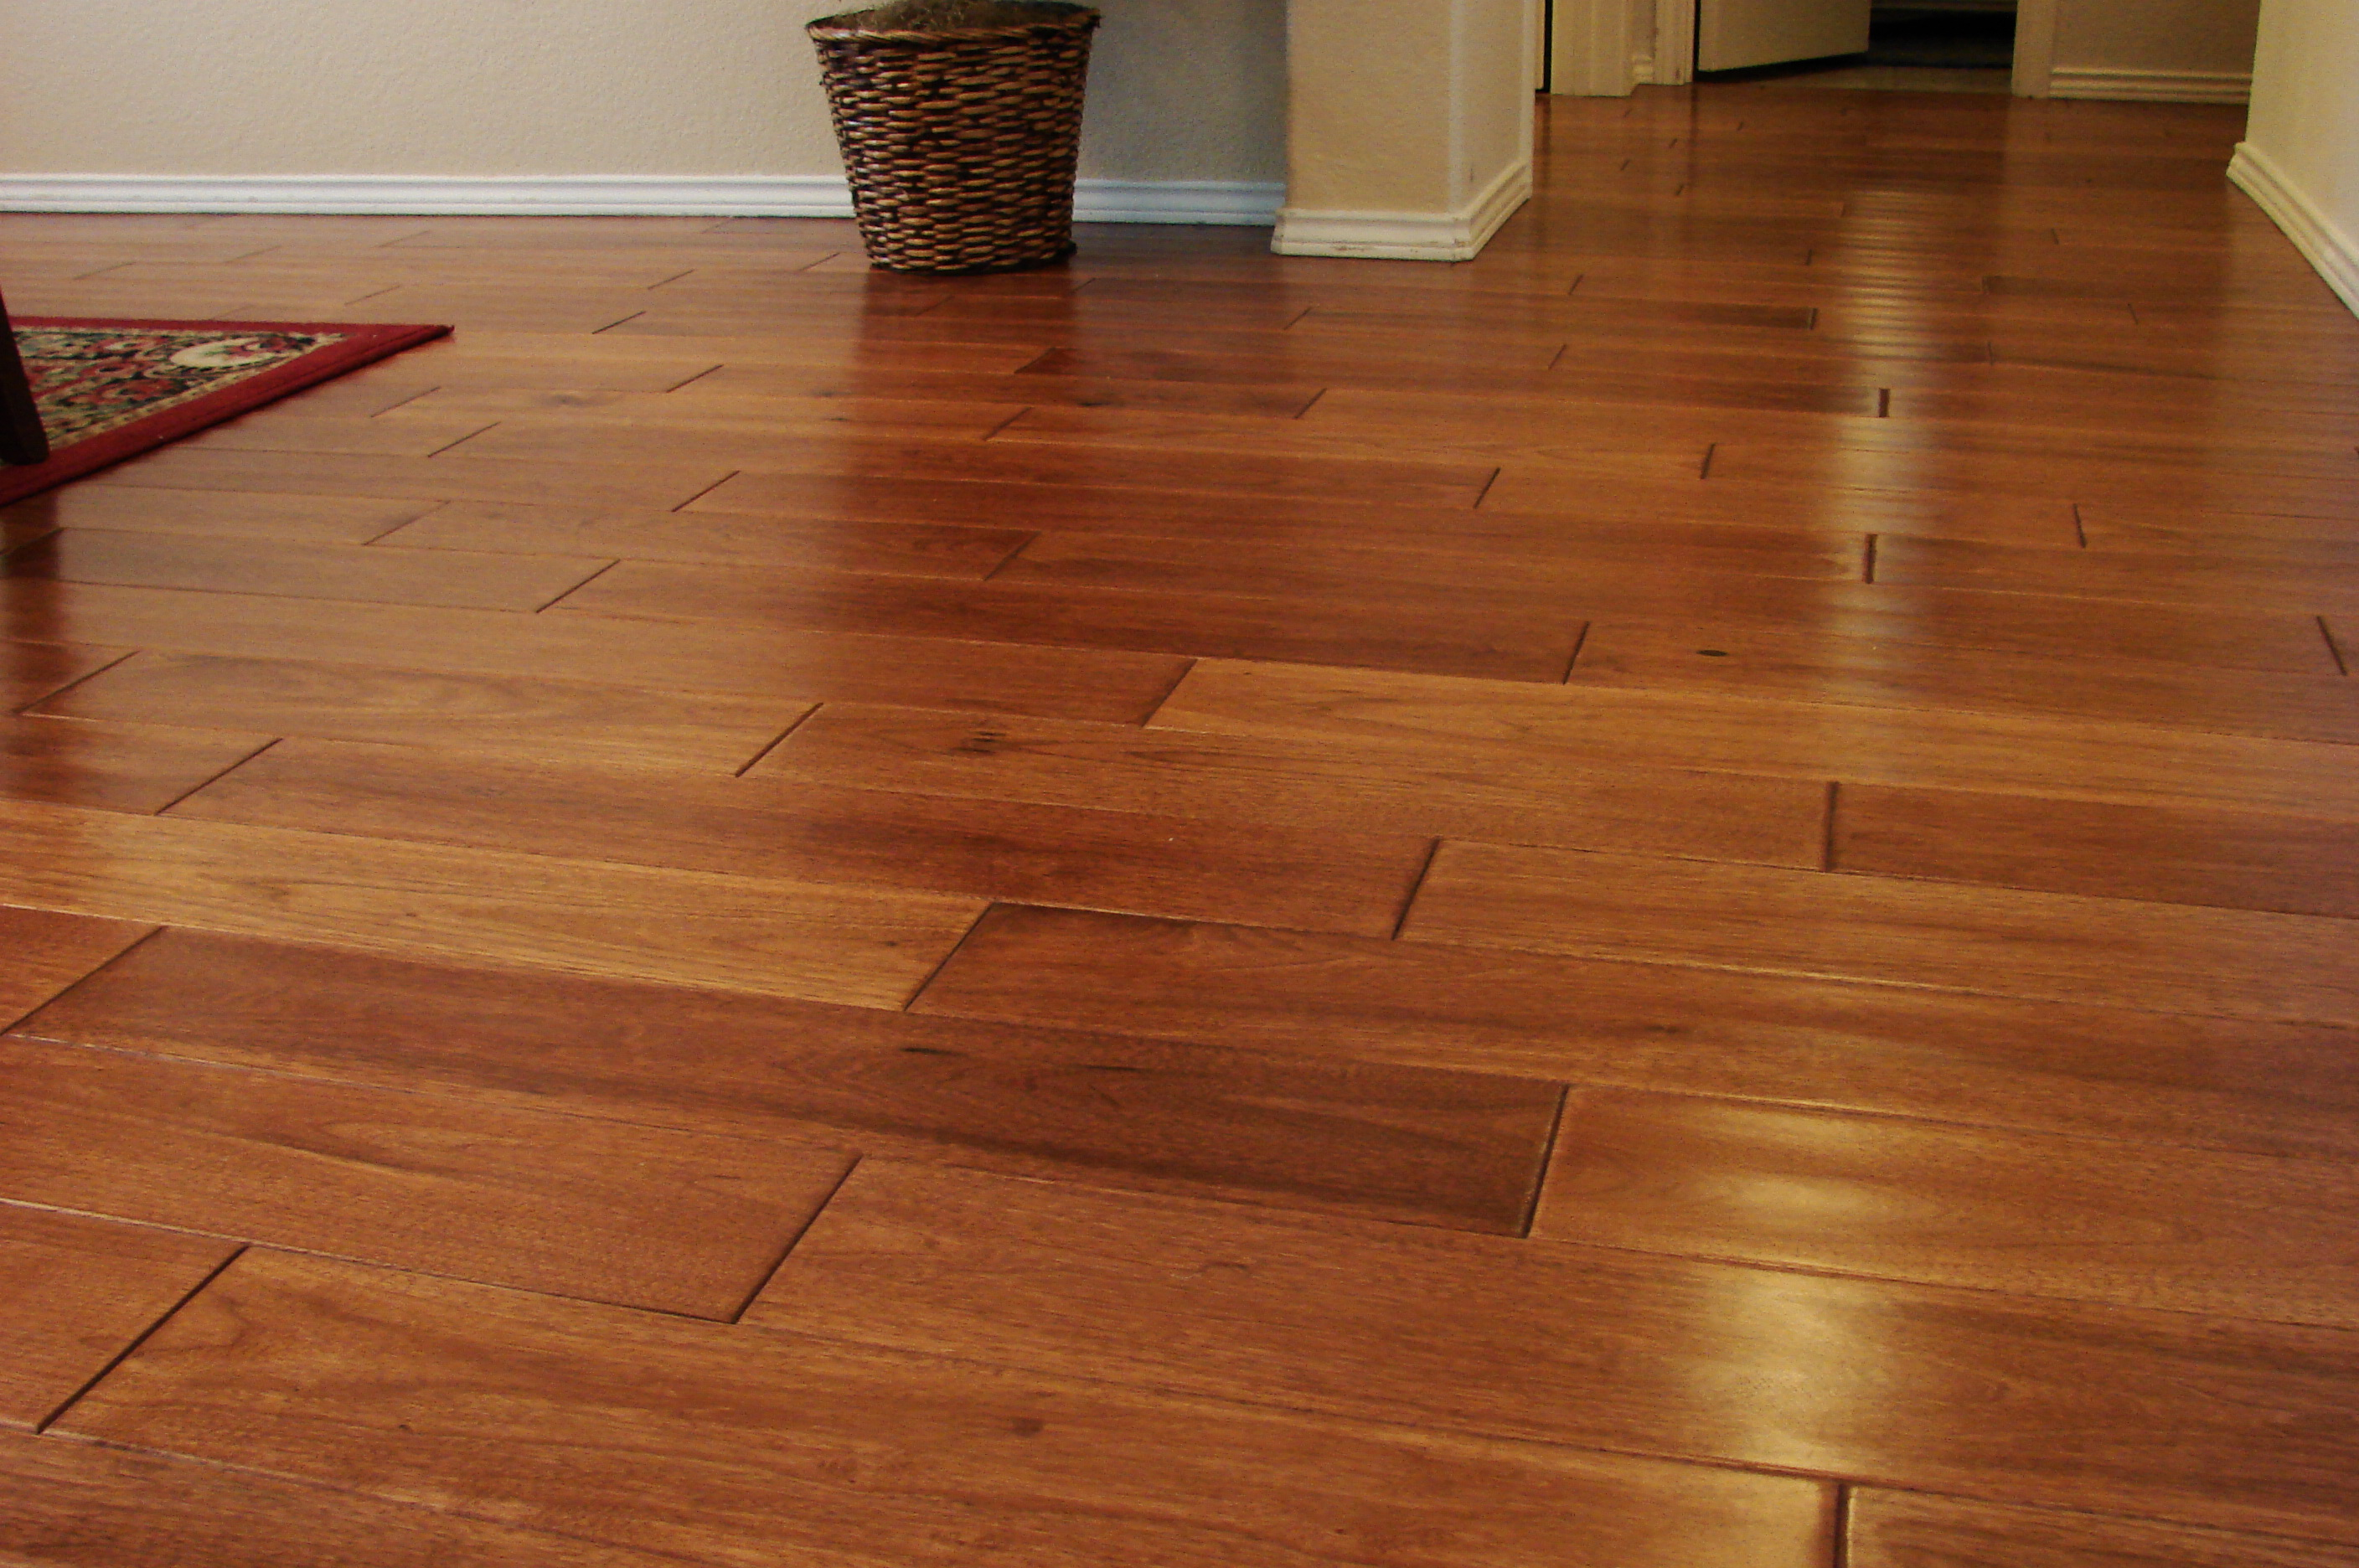 Wood floor clean magic wand carpet cleaning denver metro for Where to get hardwood floors